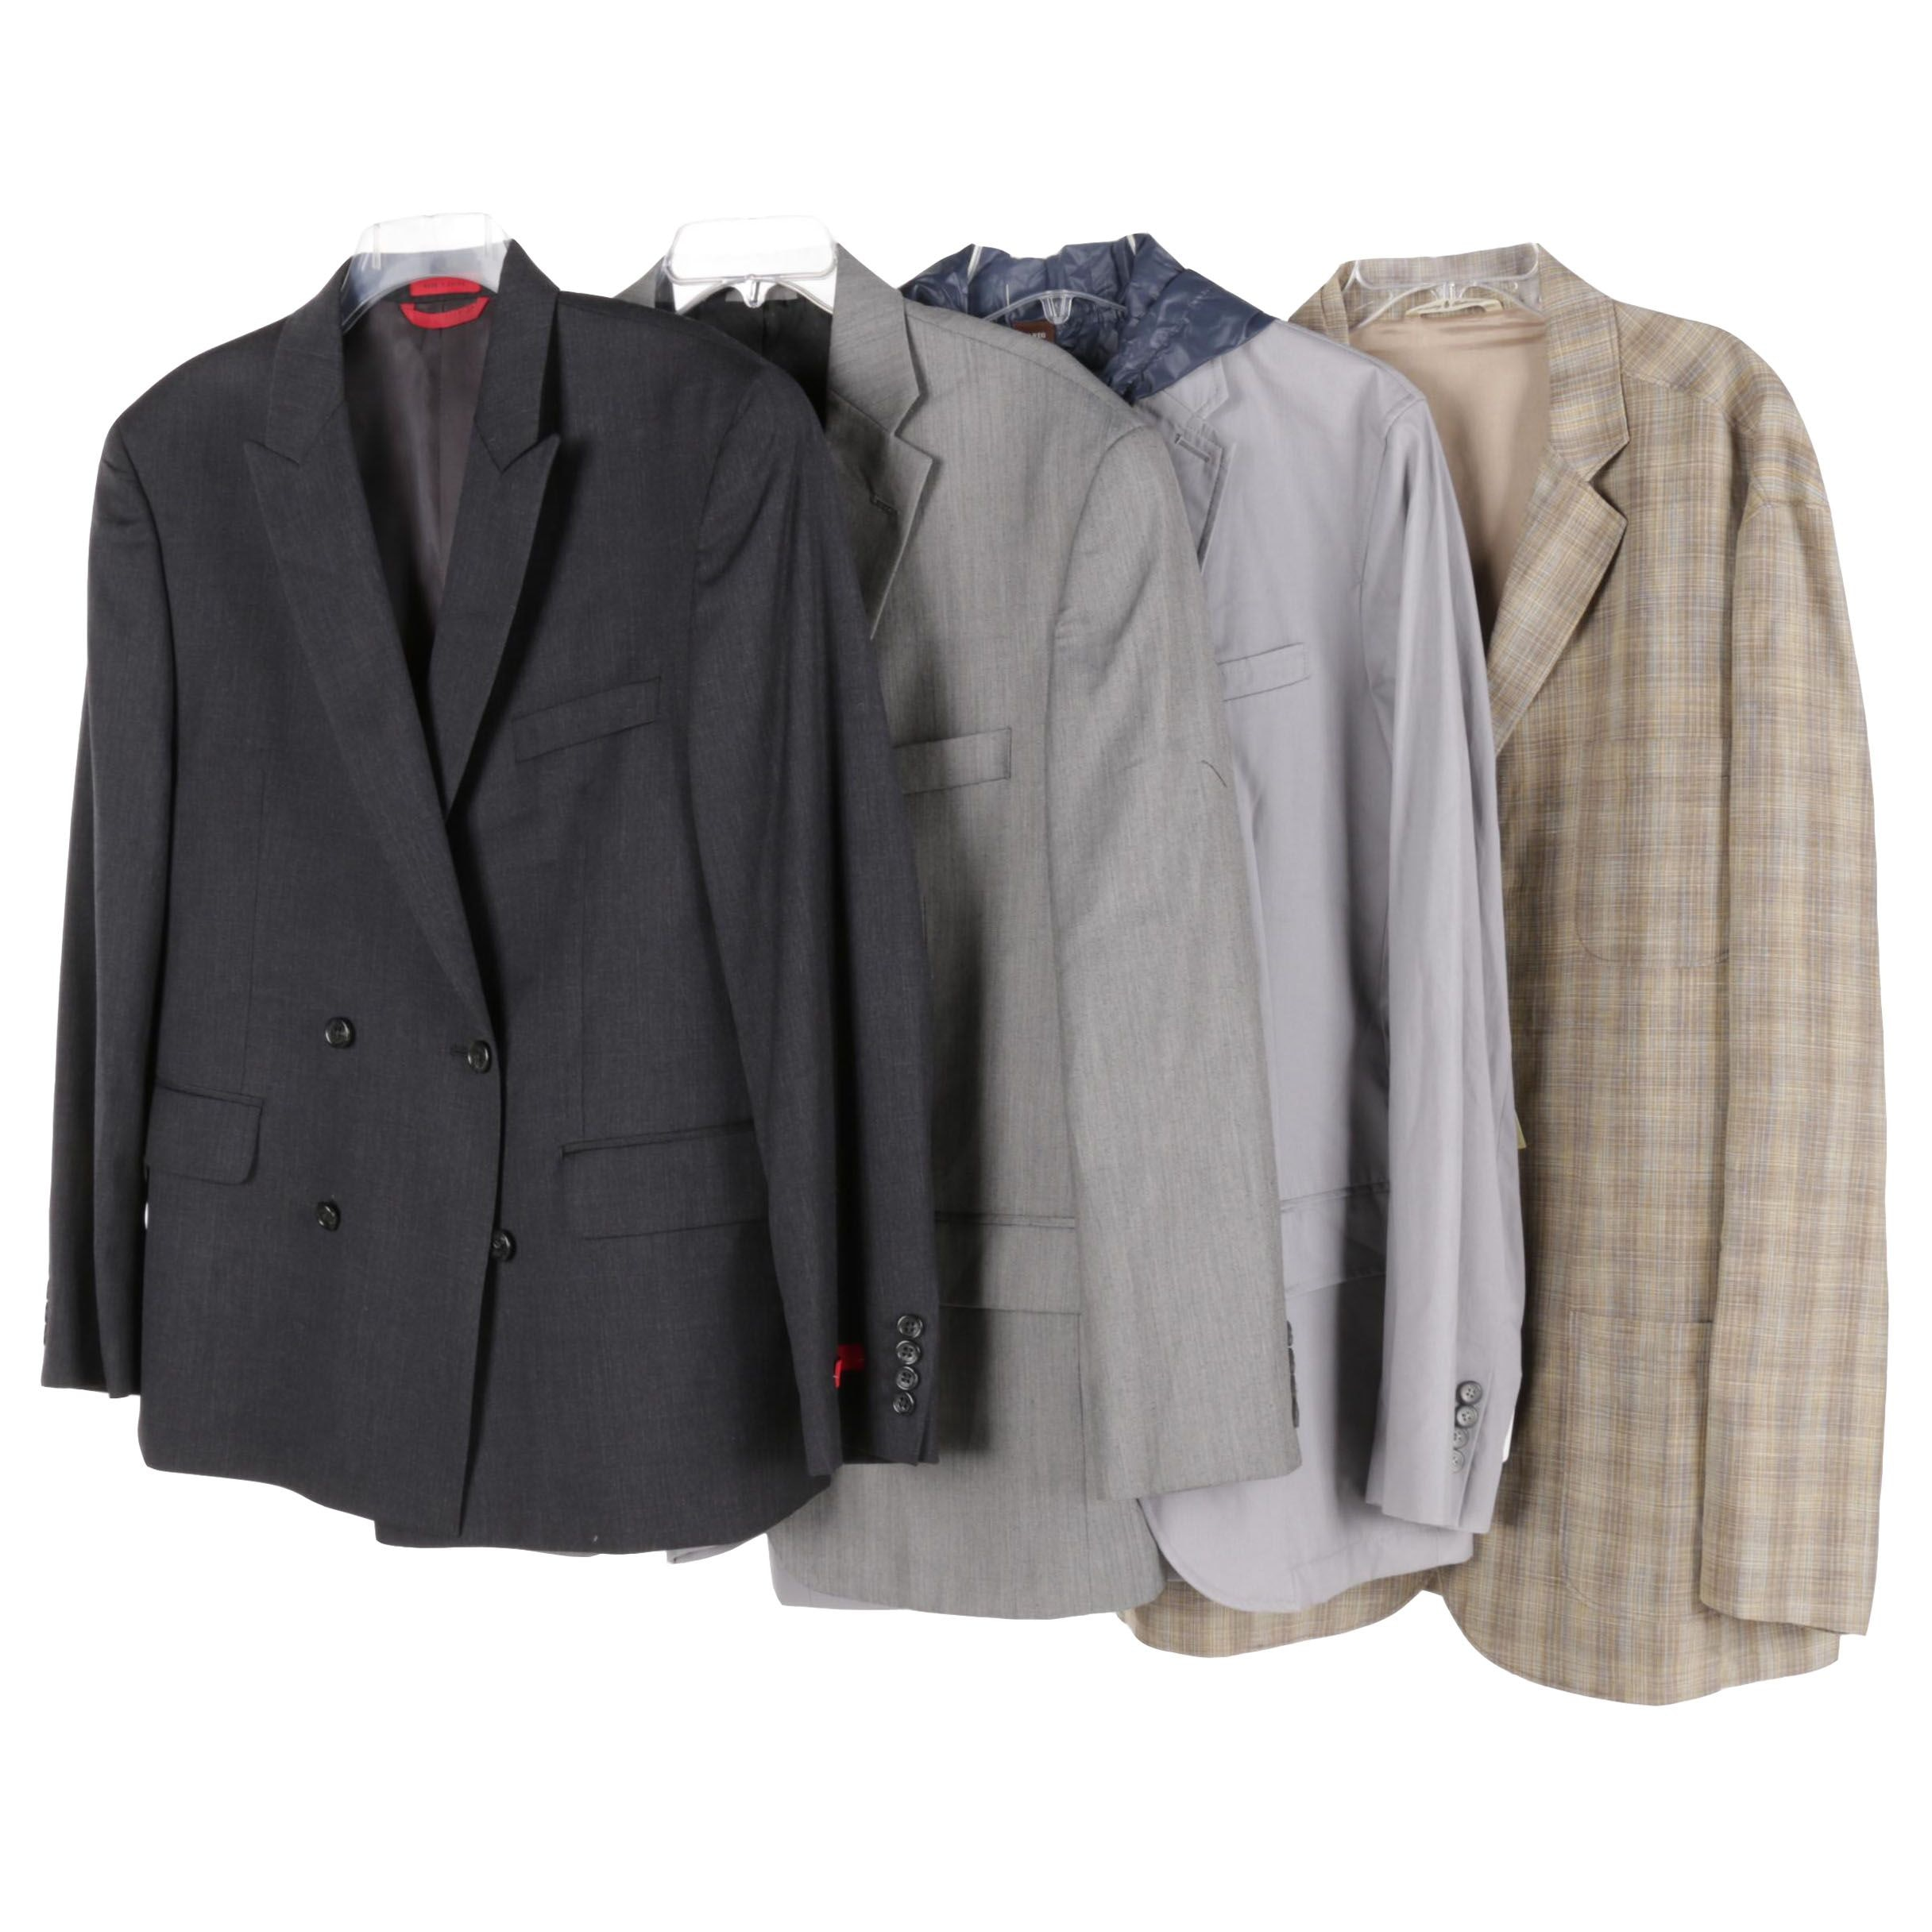 Men's Sport Coats and Suit Jackets Including Alfani for Macy's